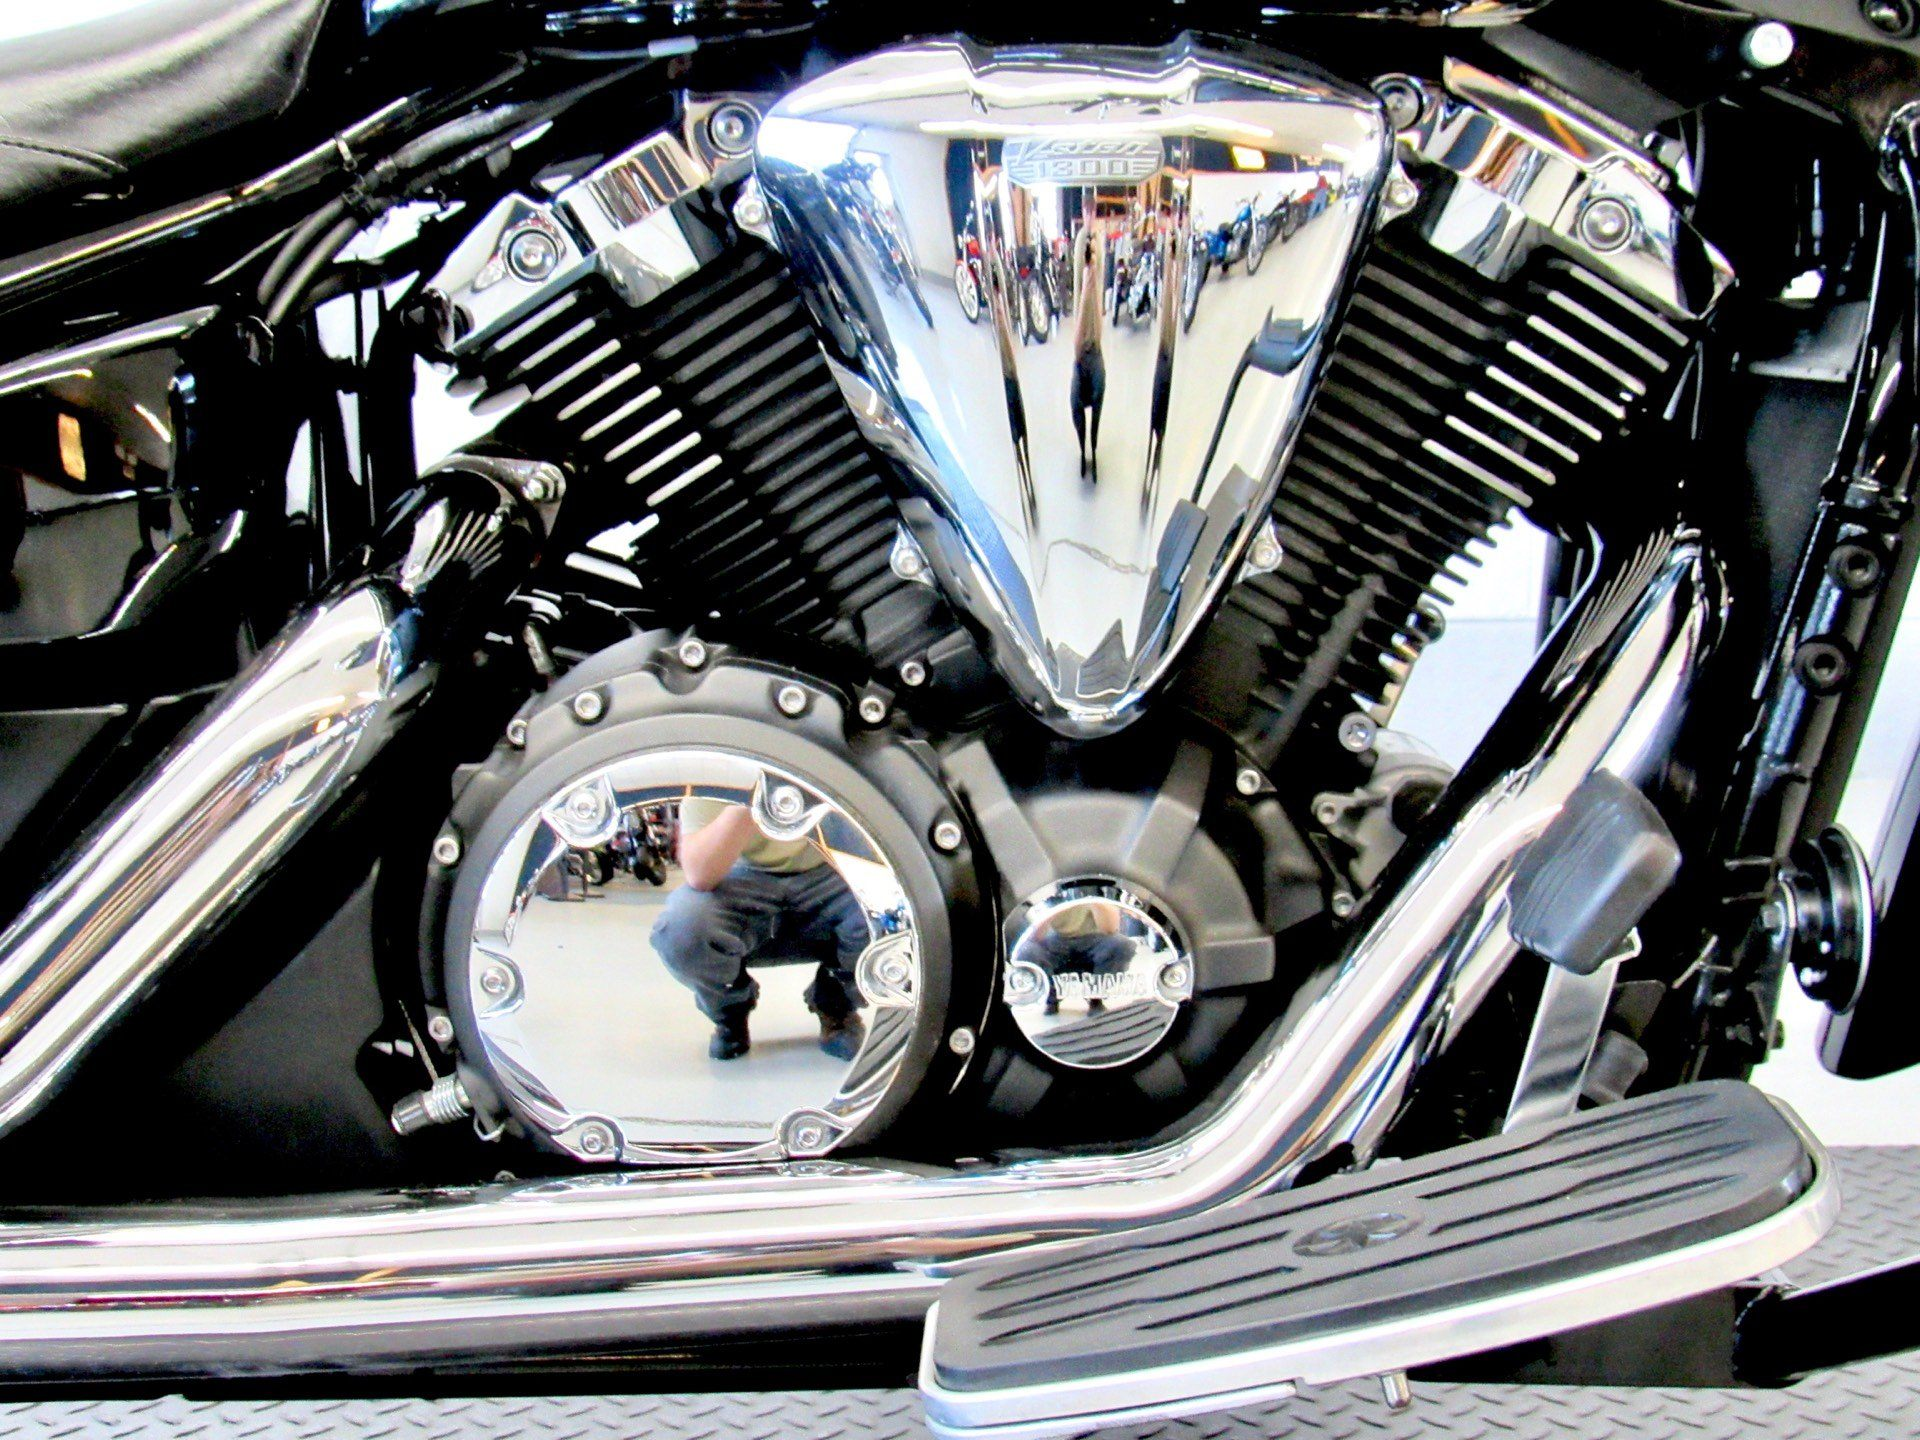 2015 Yamaha V Star 1300 Deluxe in Fredericksburg, Virginia - Photo 14